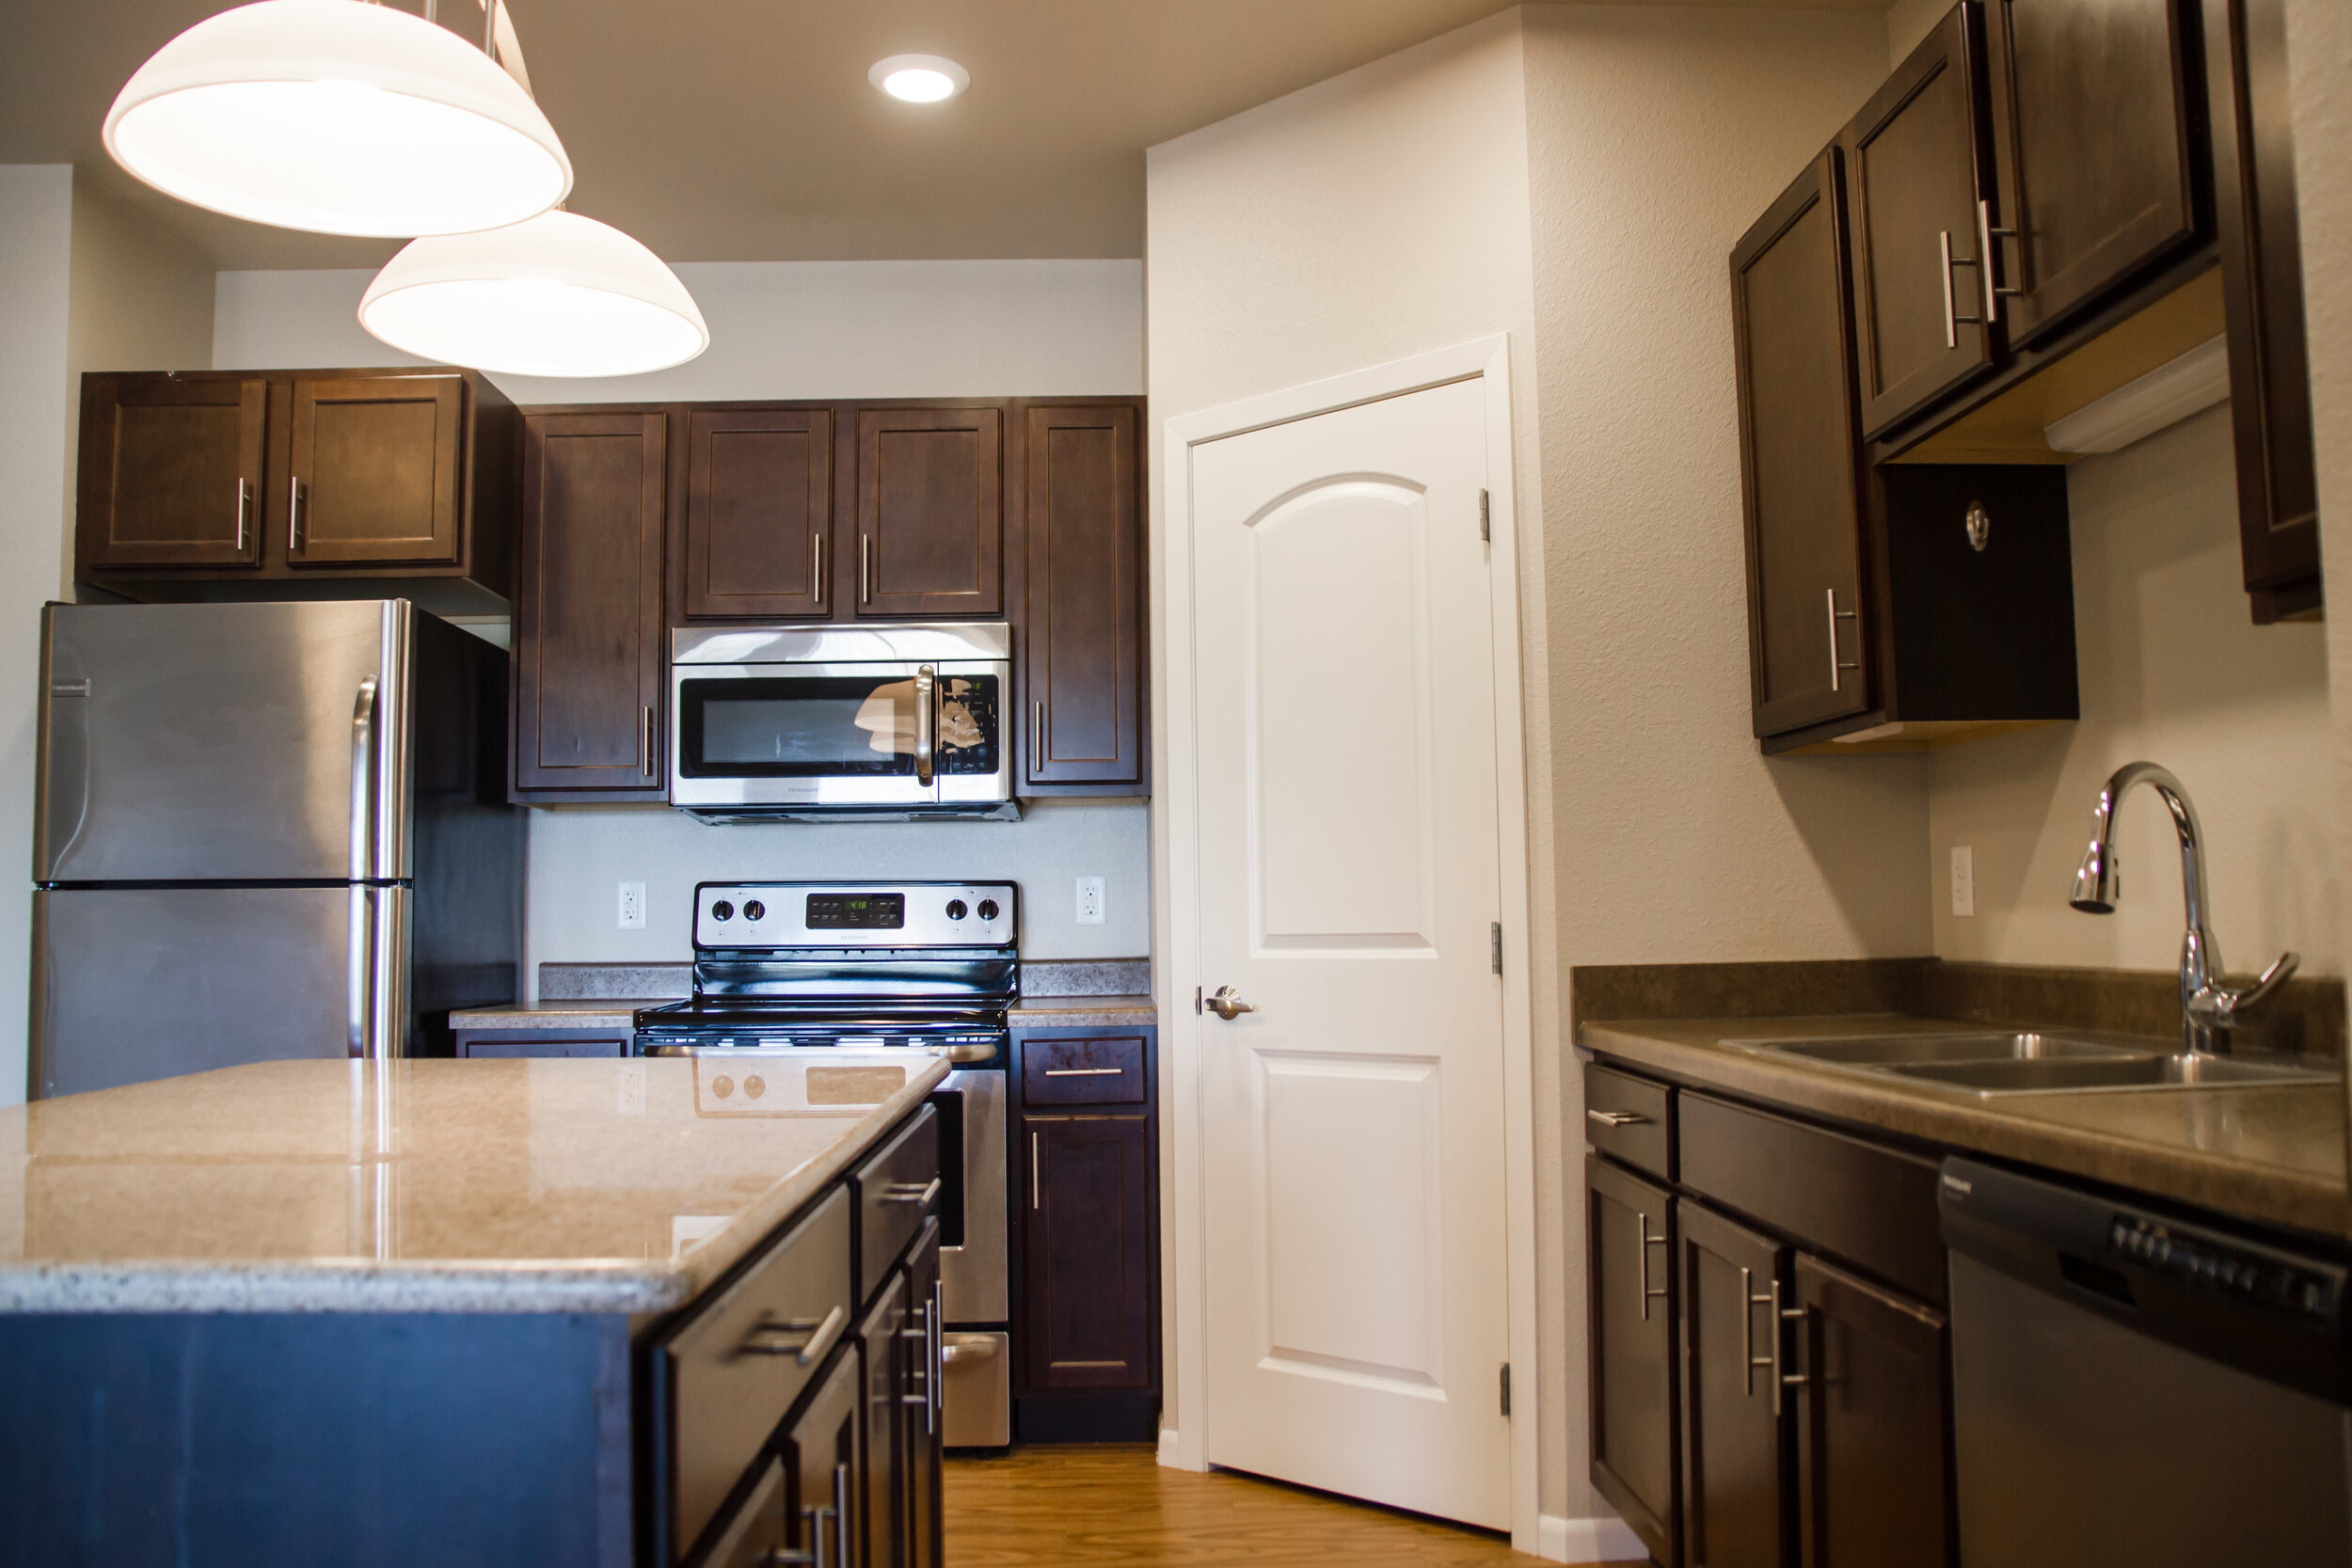 03 Great Kitchen Layouts Include Granite Countertops, an Island _ Stainless Steel Appliances.jpg